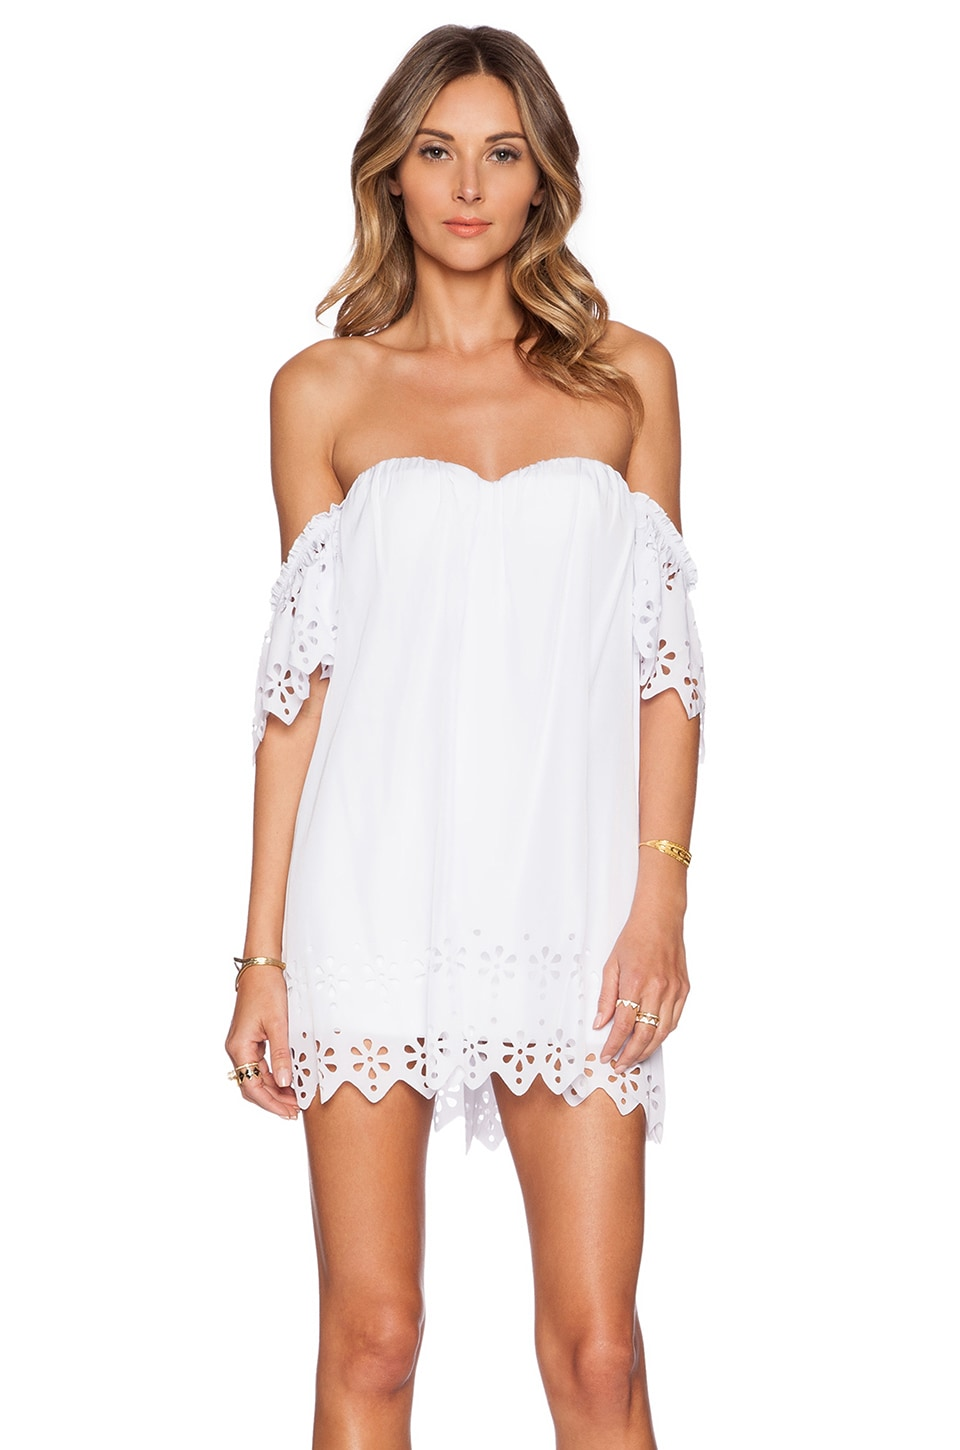 Le Salty Label Laylah Open Back Dress In White | ARCHFASHION